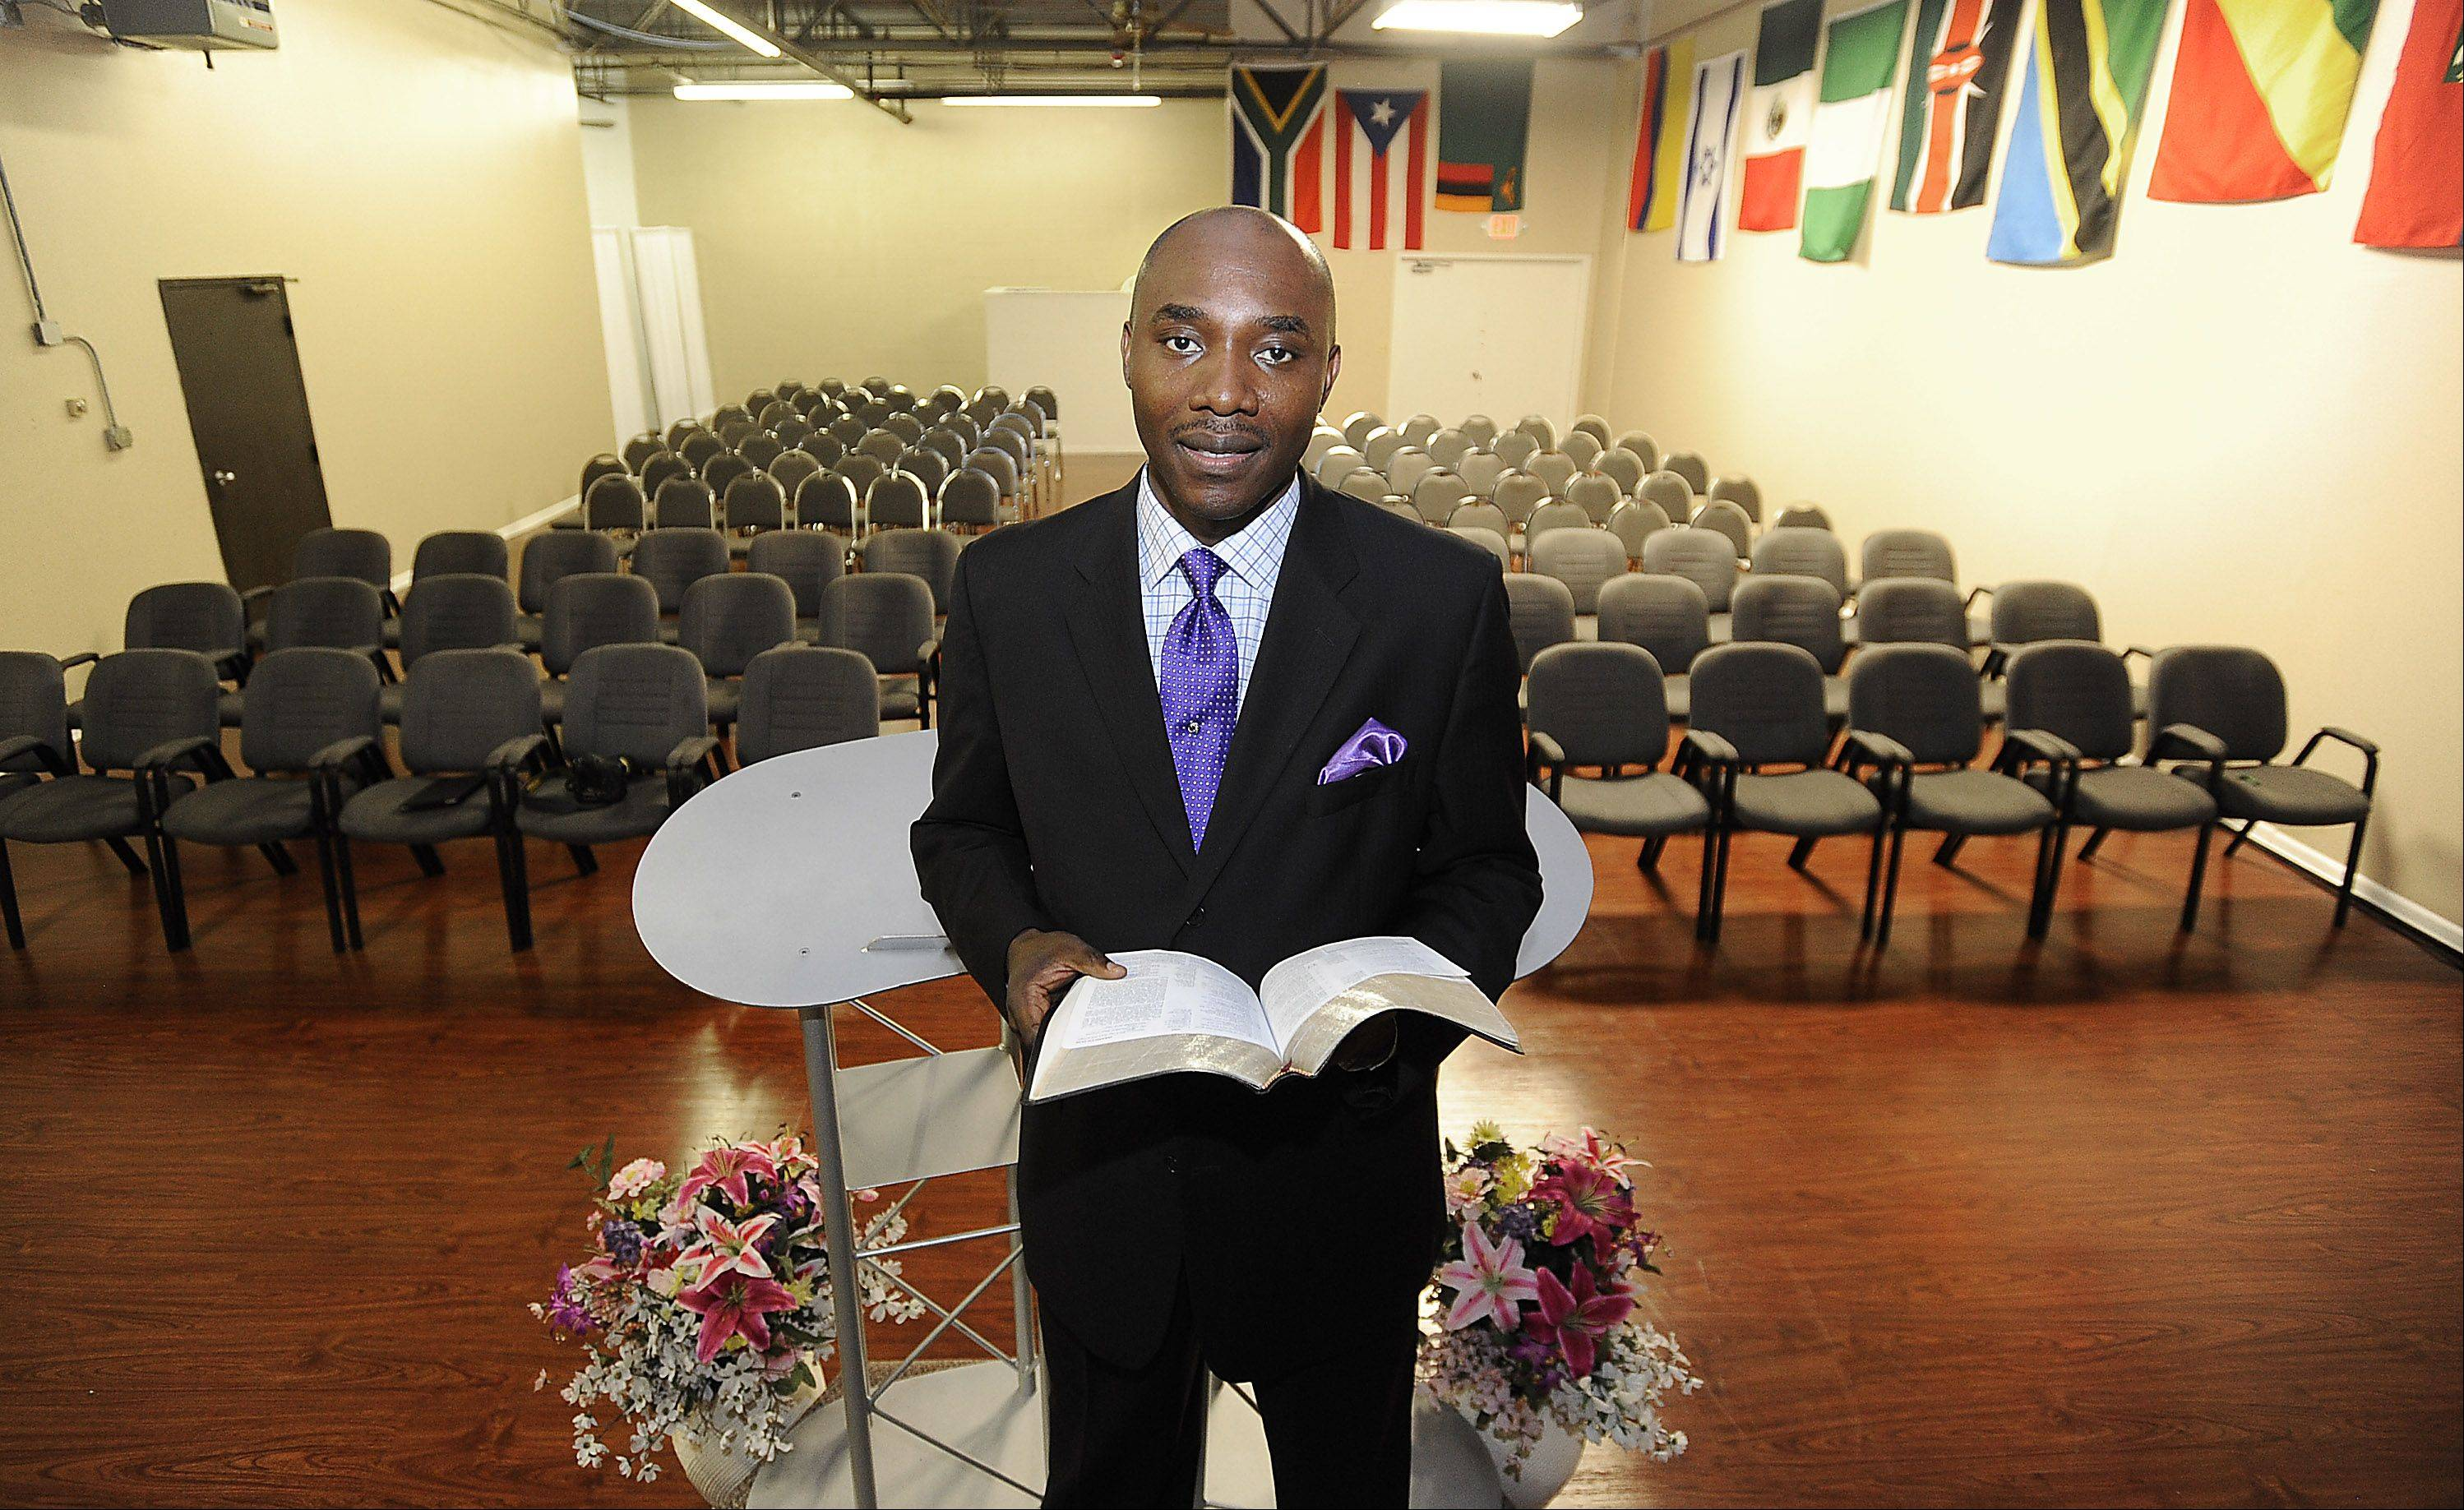 Senior Pastor Joe Kamanda of Round Lake gets ready to celebrate Glory House�s 10th anniversary with a ribbon cutting and service this Friday after moving into a building in Prospect Heights.